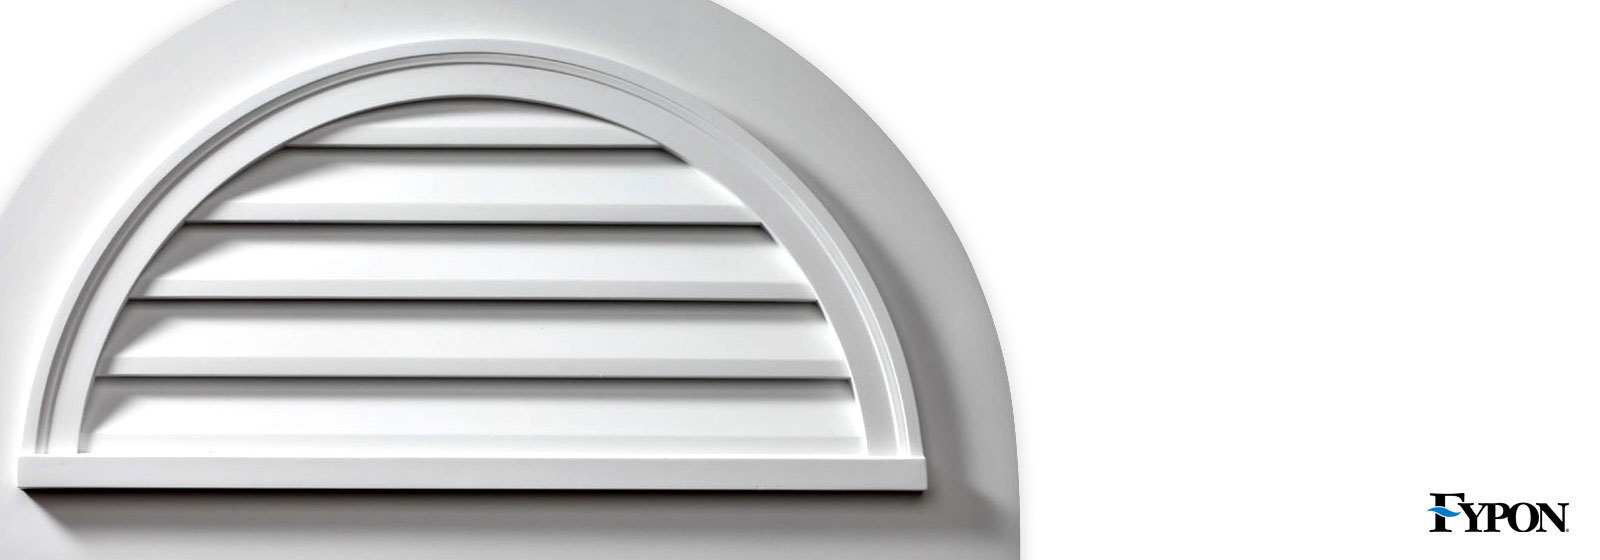 Fypon half round gable vents fypon vents shop diy for Fypon gable vents